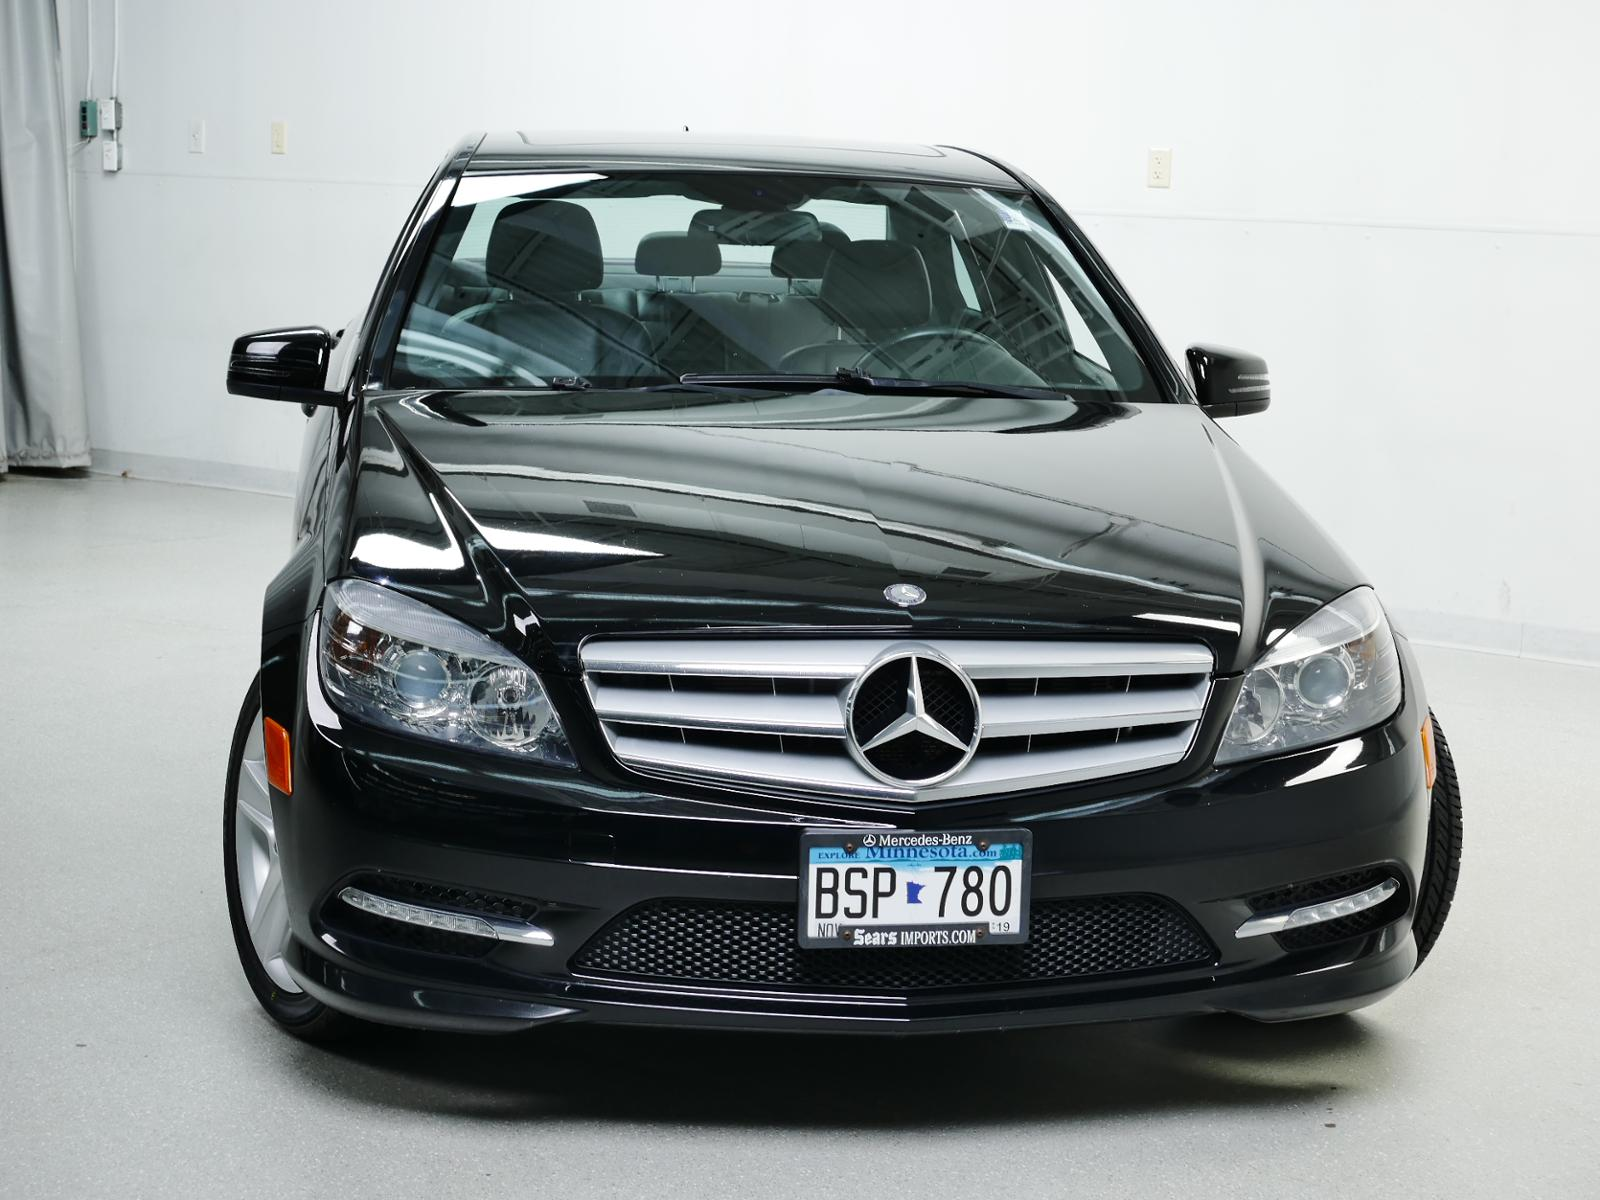 Pre-Owned 2011 Mercedes-Benz C 300 AWD 4MATIC®